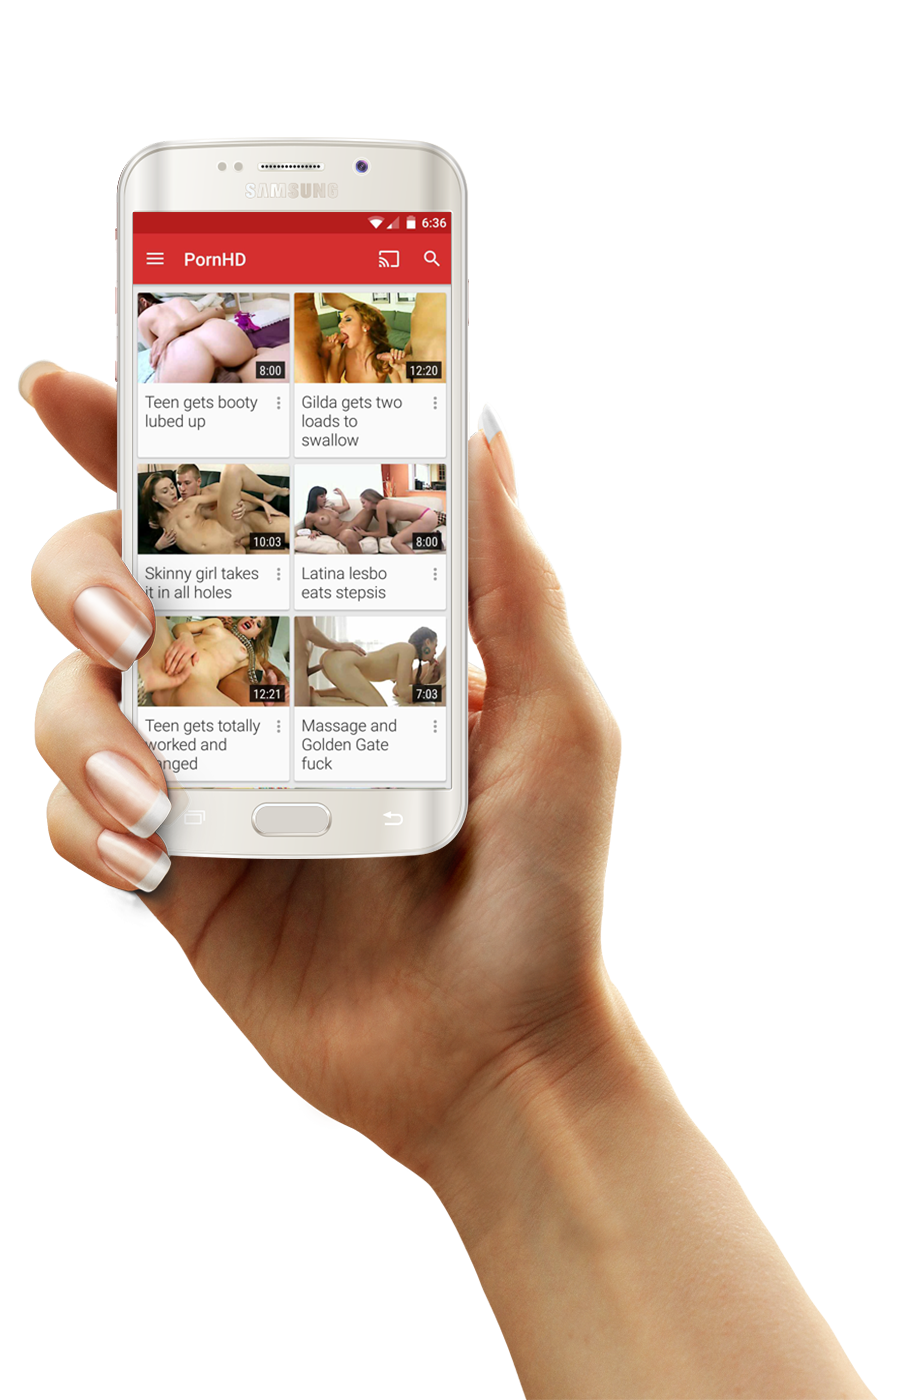 Apps De Porno Android cumtube - free porn hd & vr videos on android